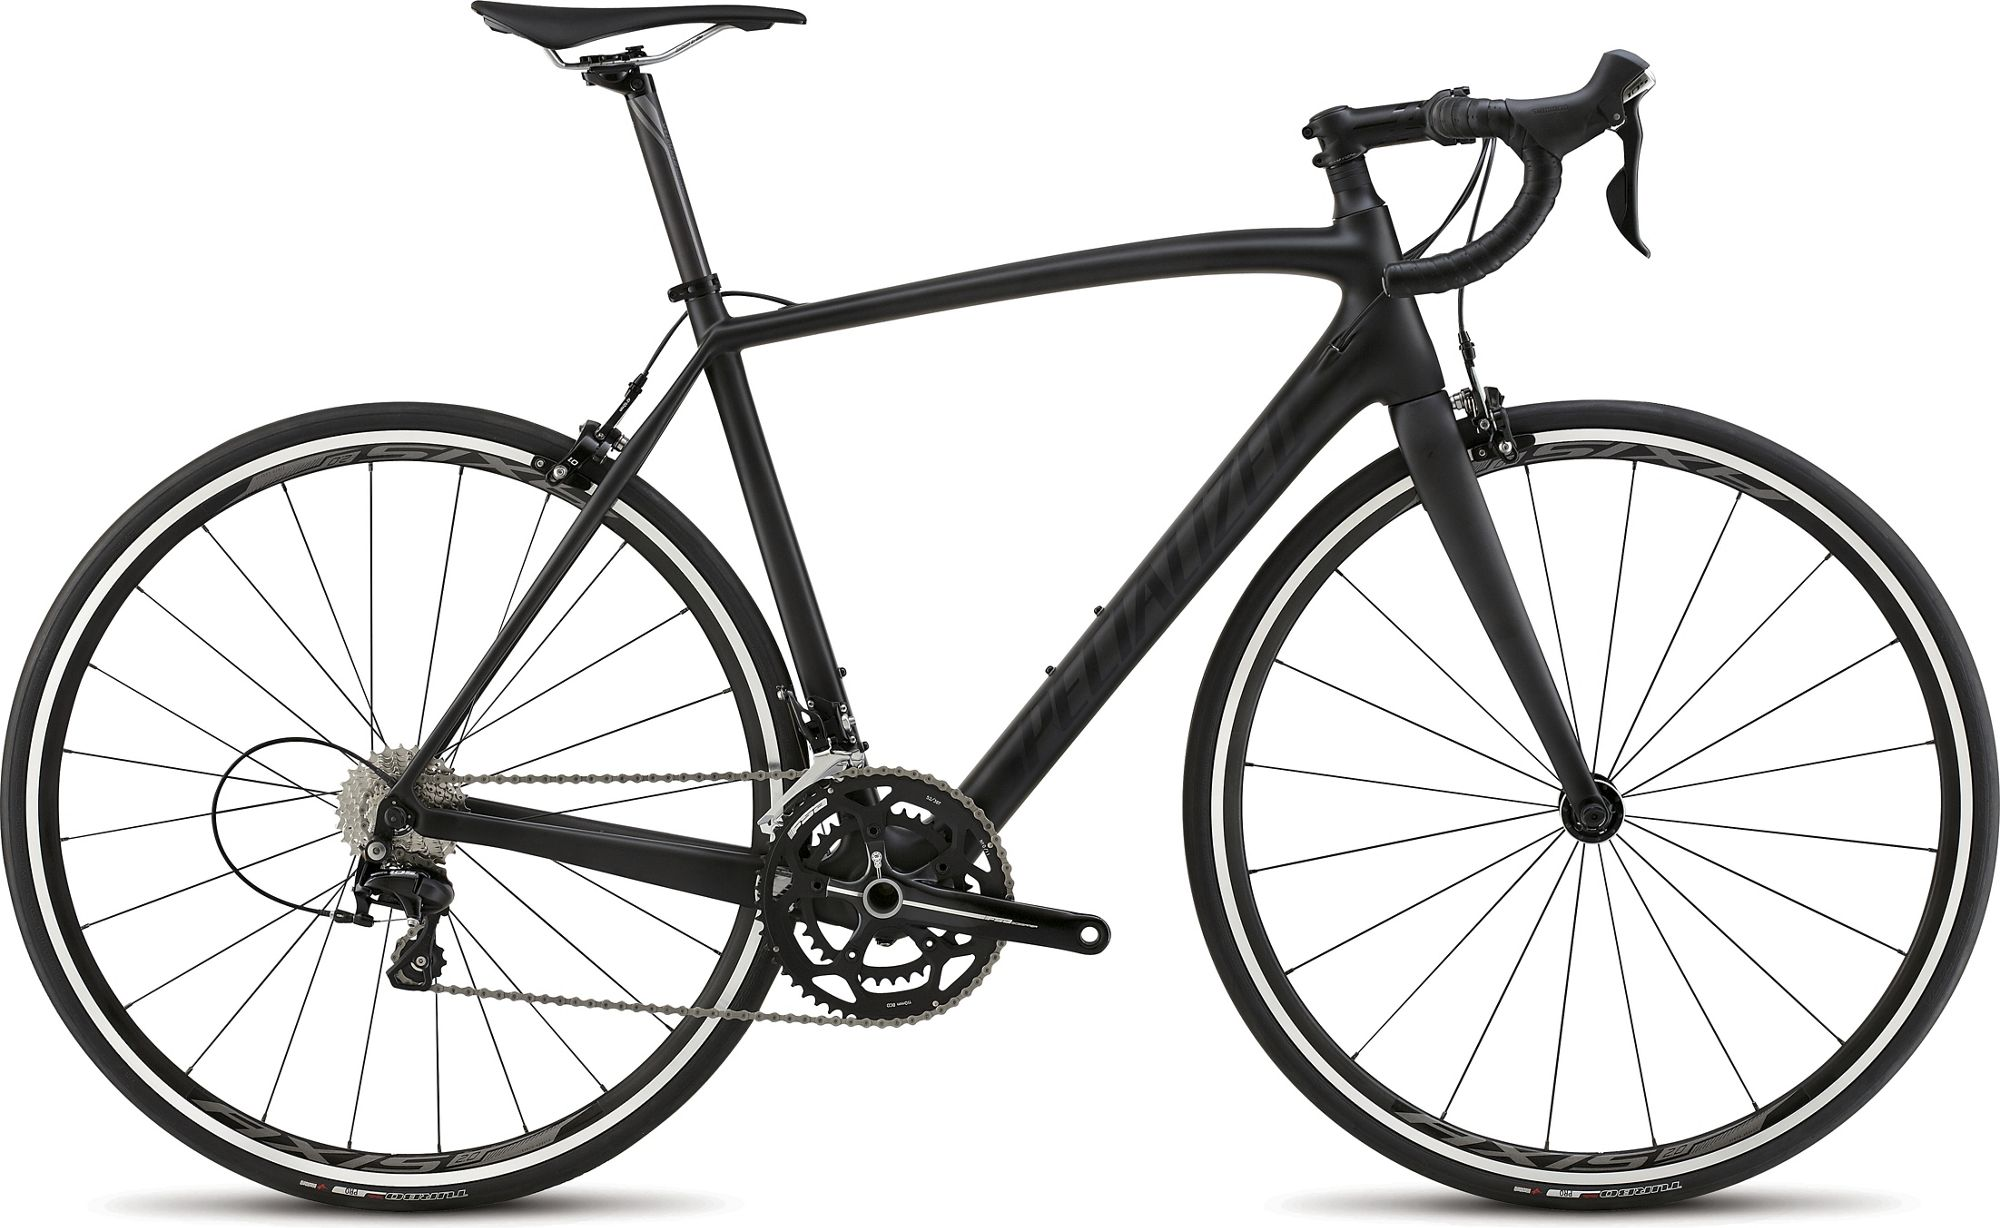 1fbf235e79a Specialized Tarmac Sport 2015 review - The Bike List